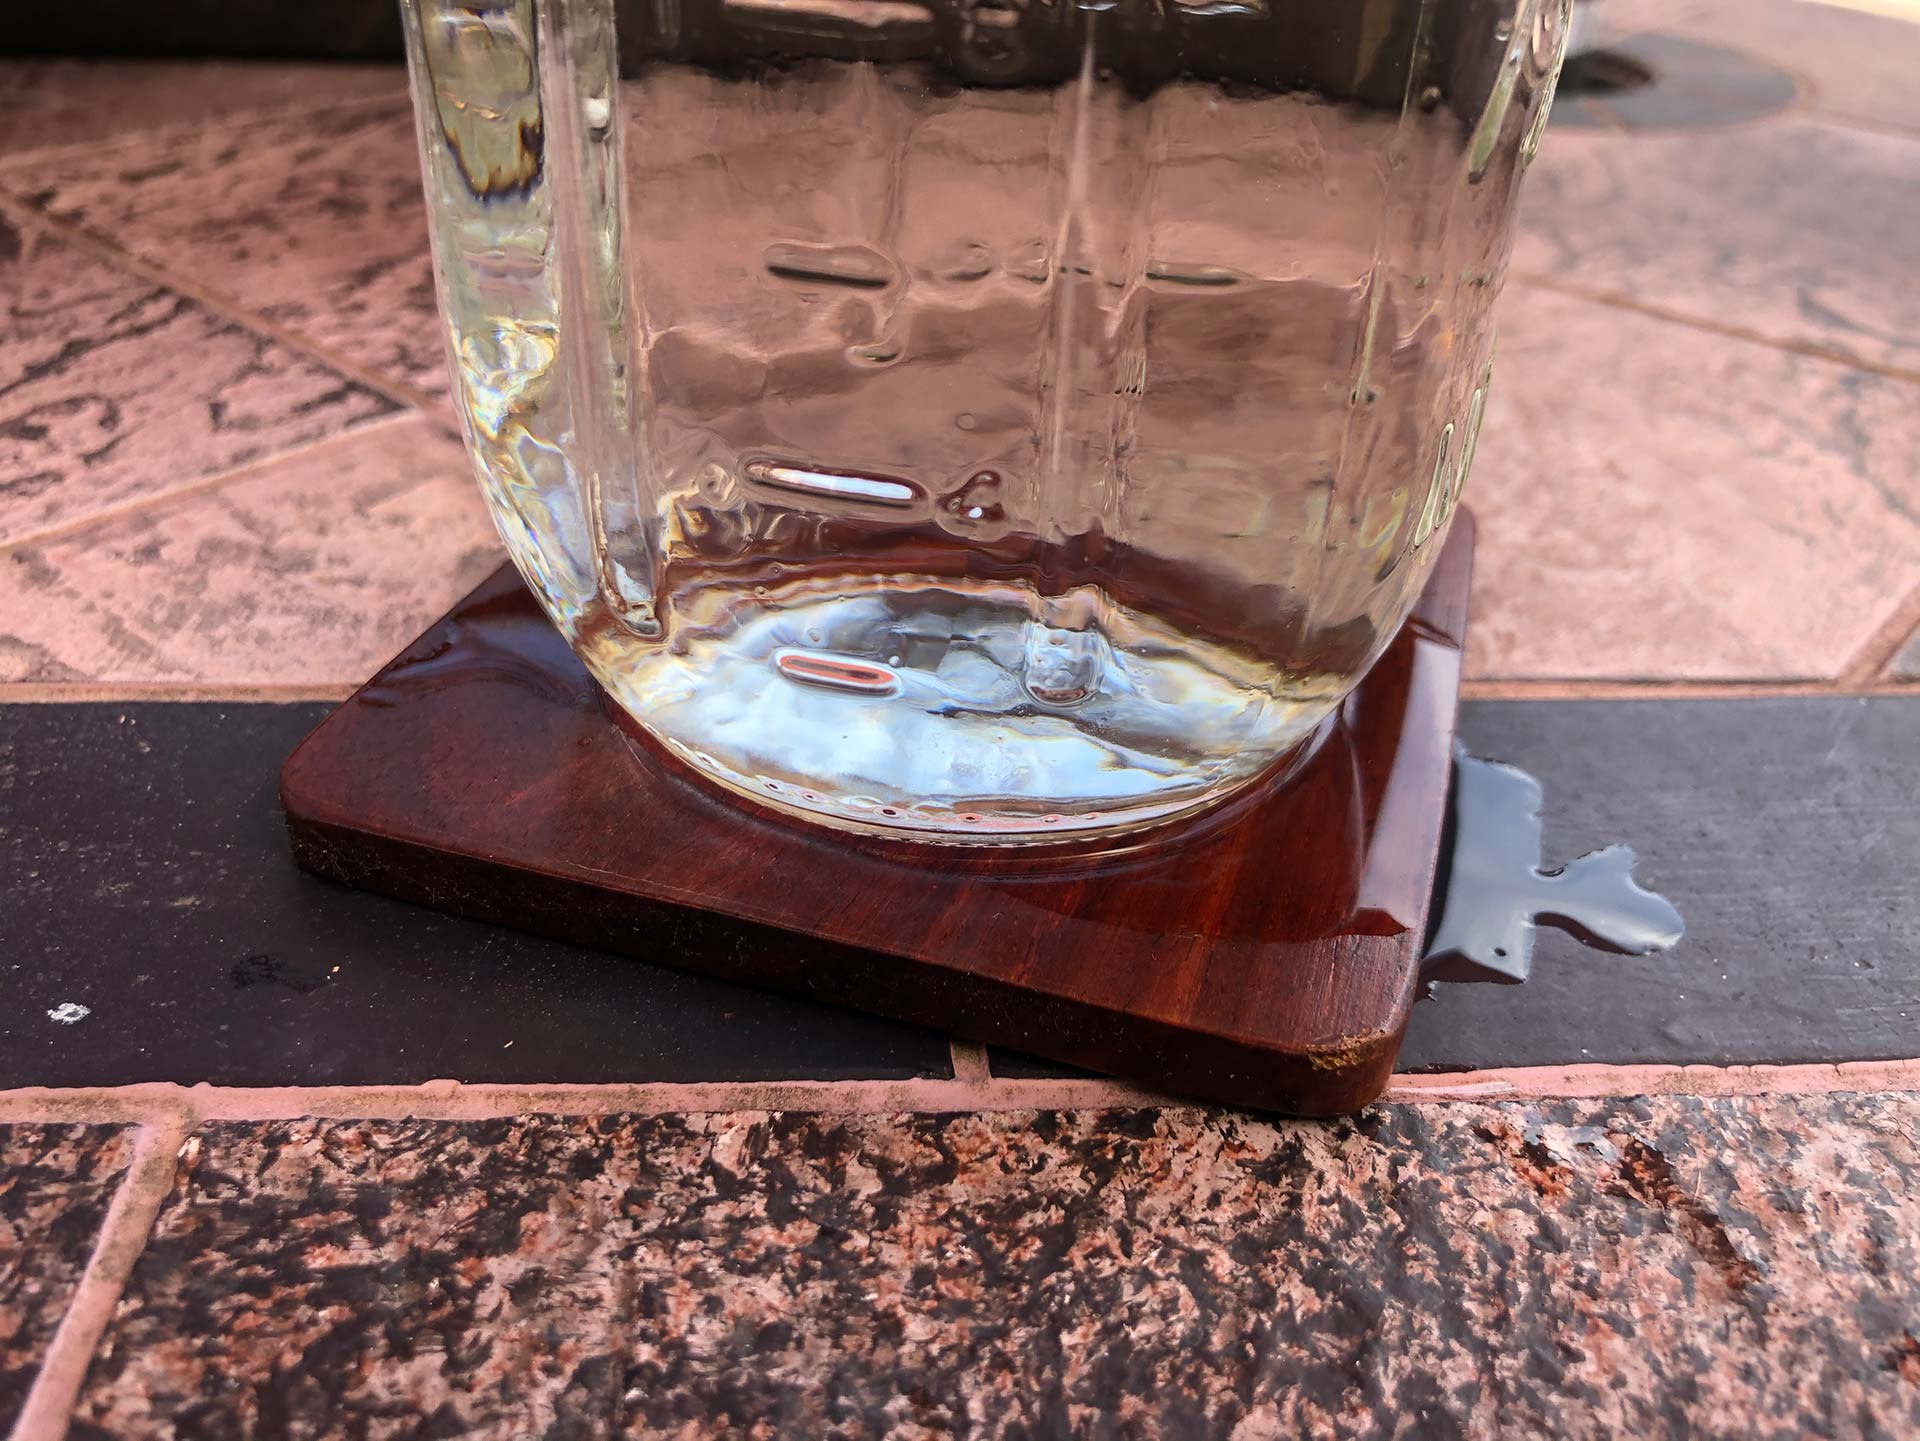 Non absorbent coaster spilling onto furniture